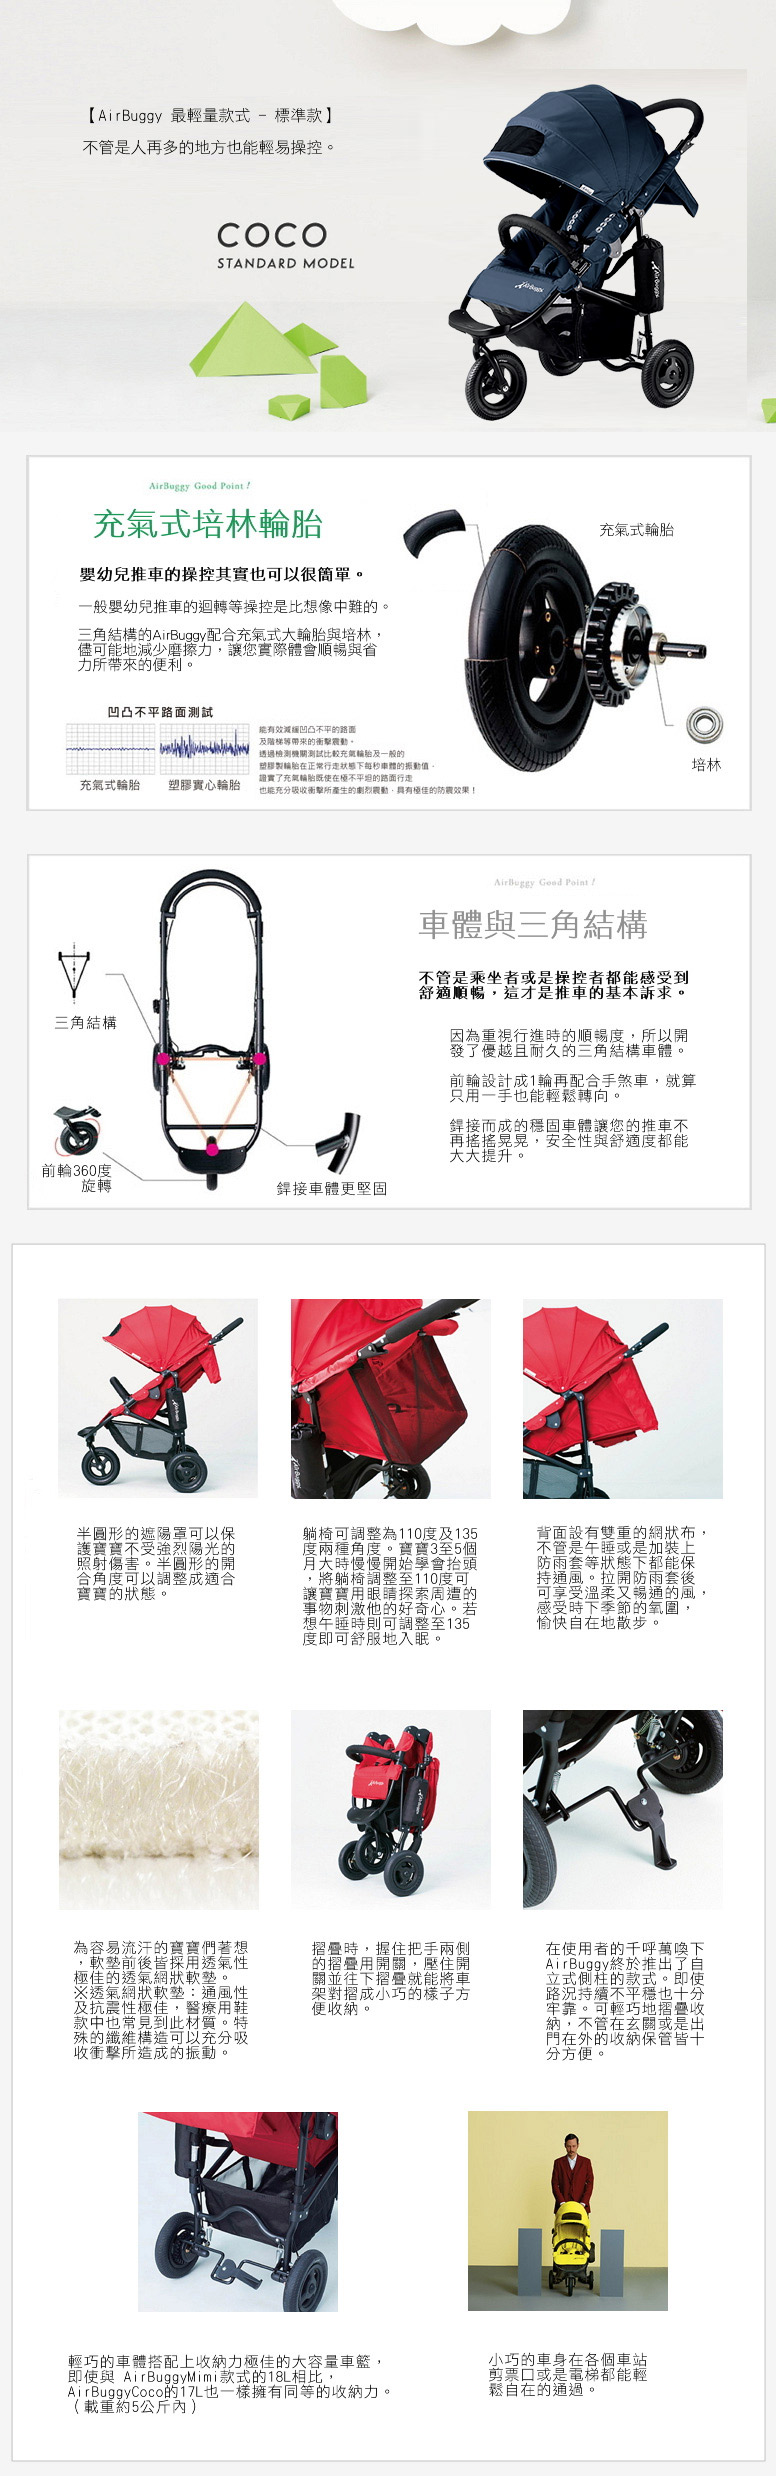 airbuggy_coco_standard_info011